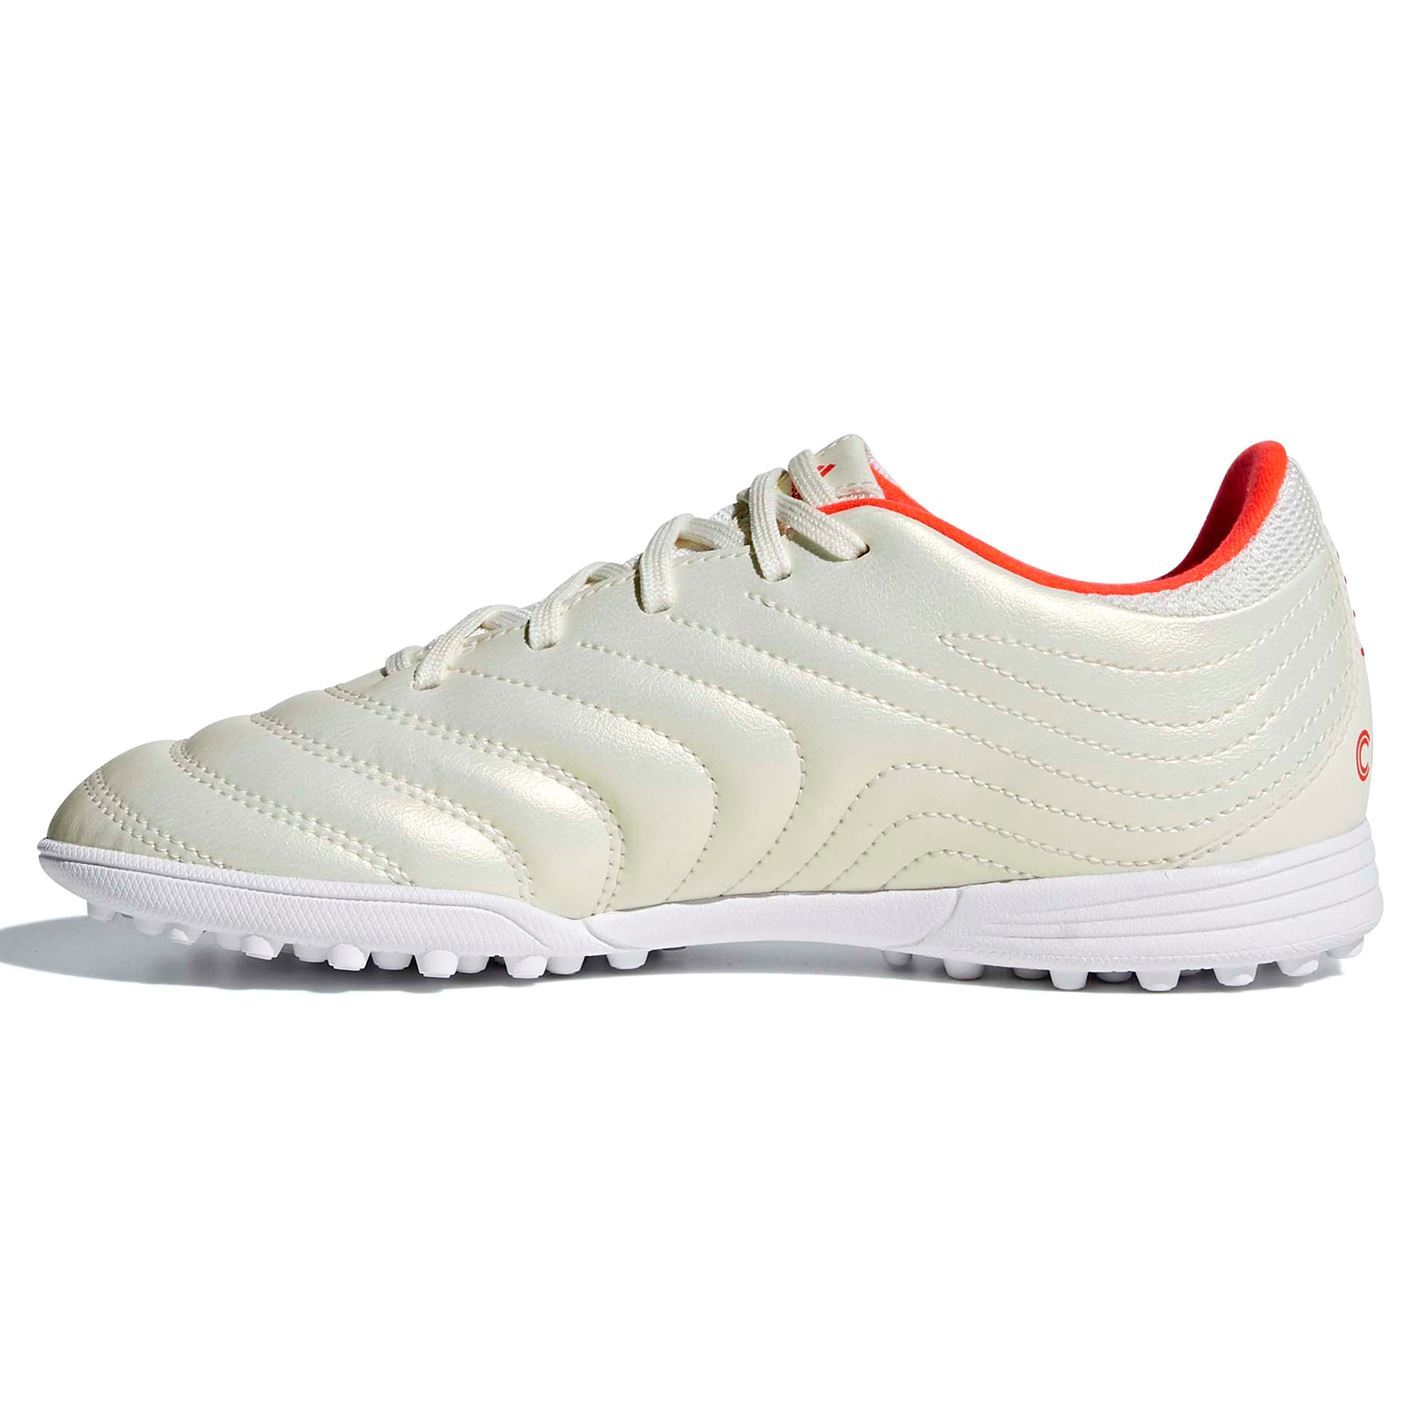 Details about adidas Copa 19.3 Astro Turf Football Trainers Juniors White Soccer Shoes